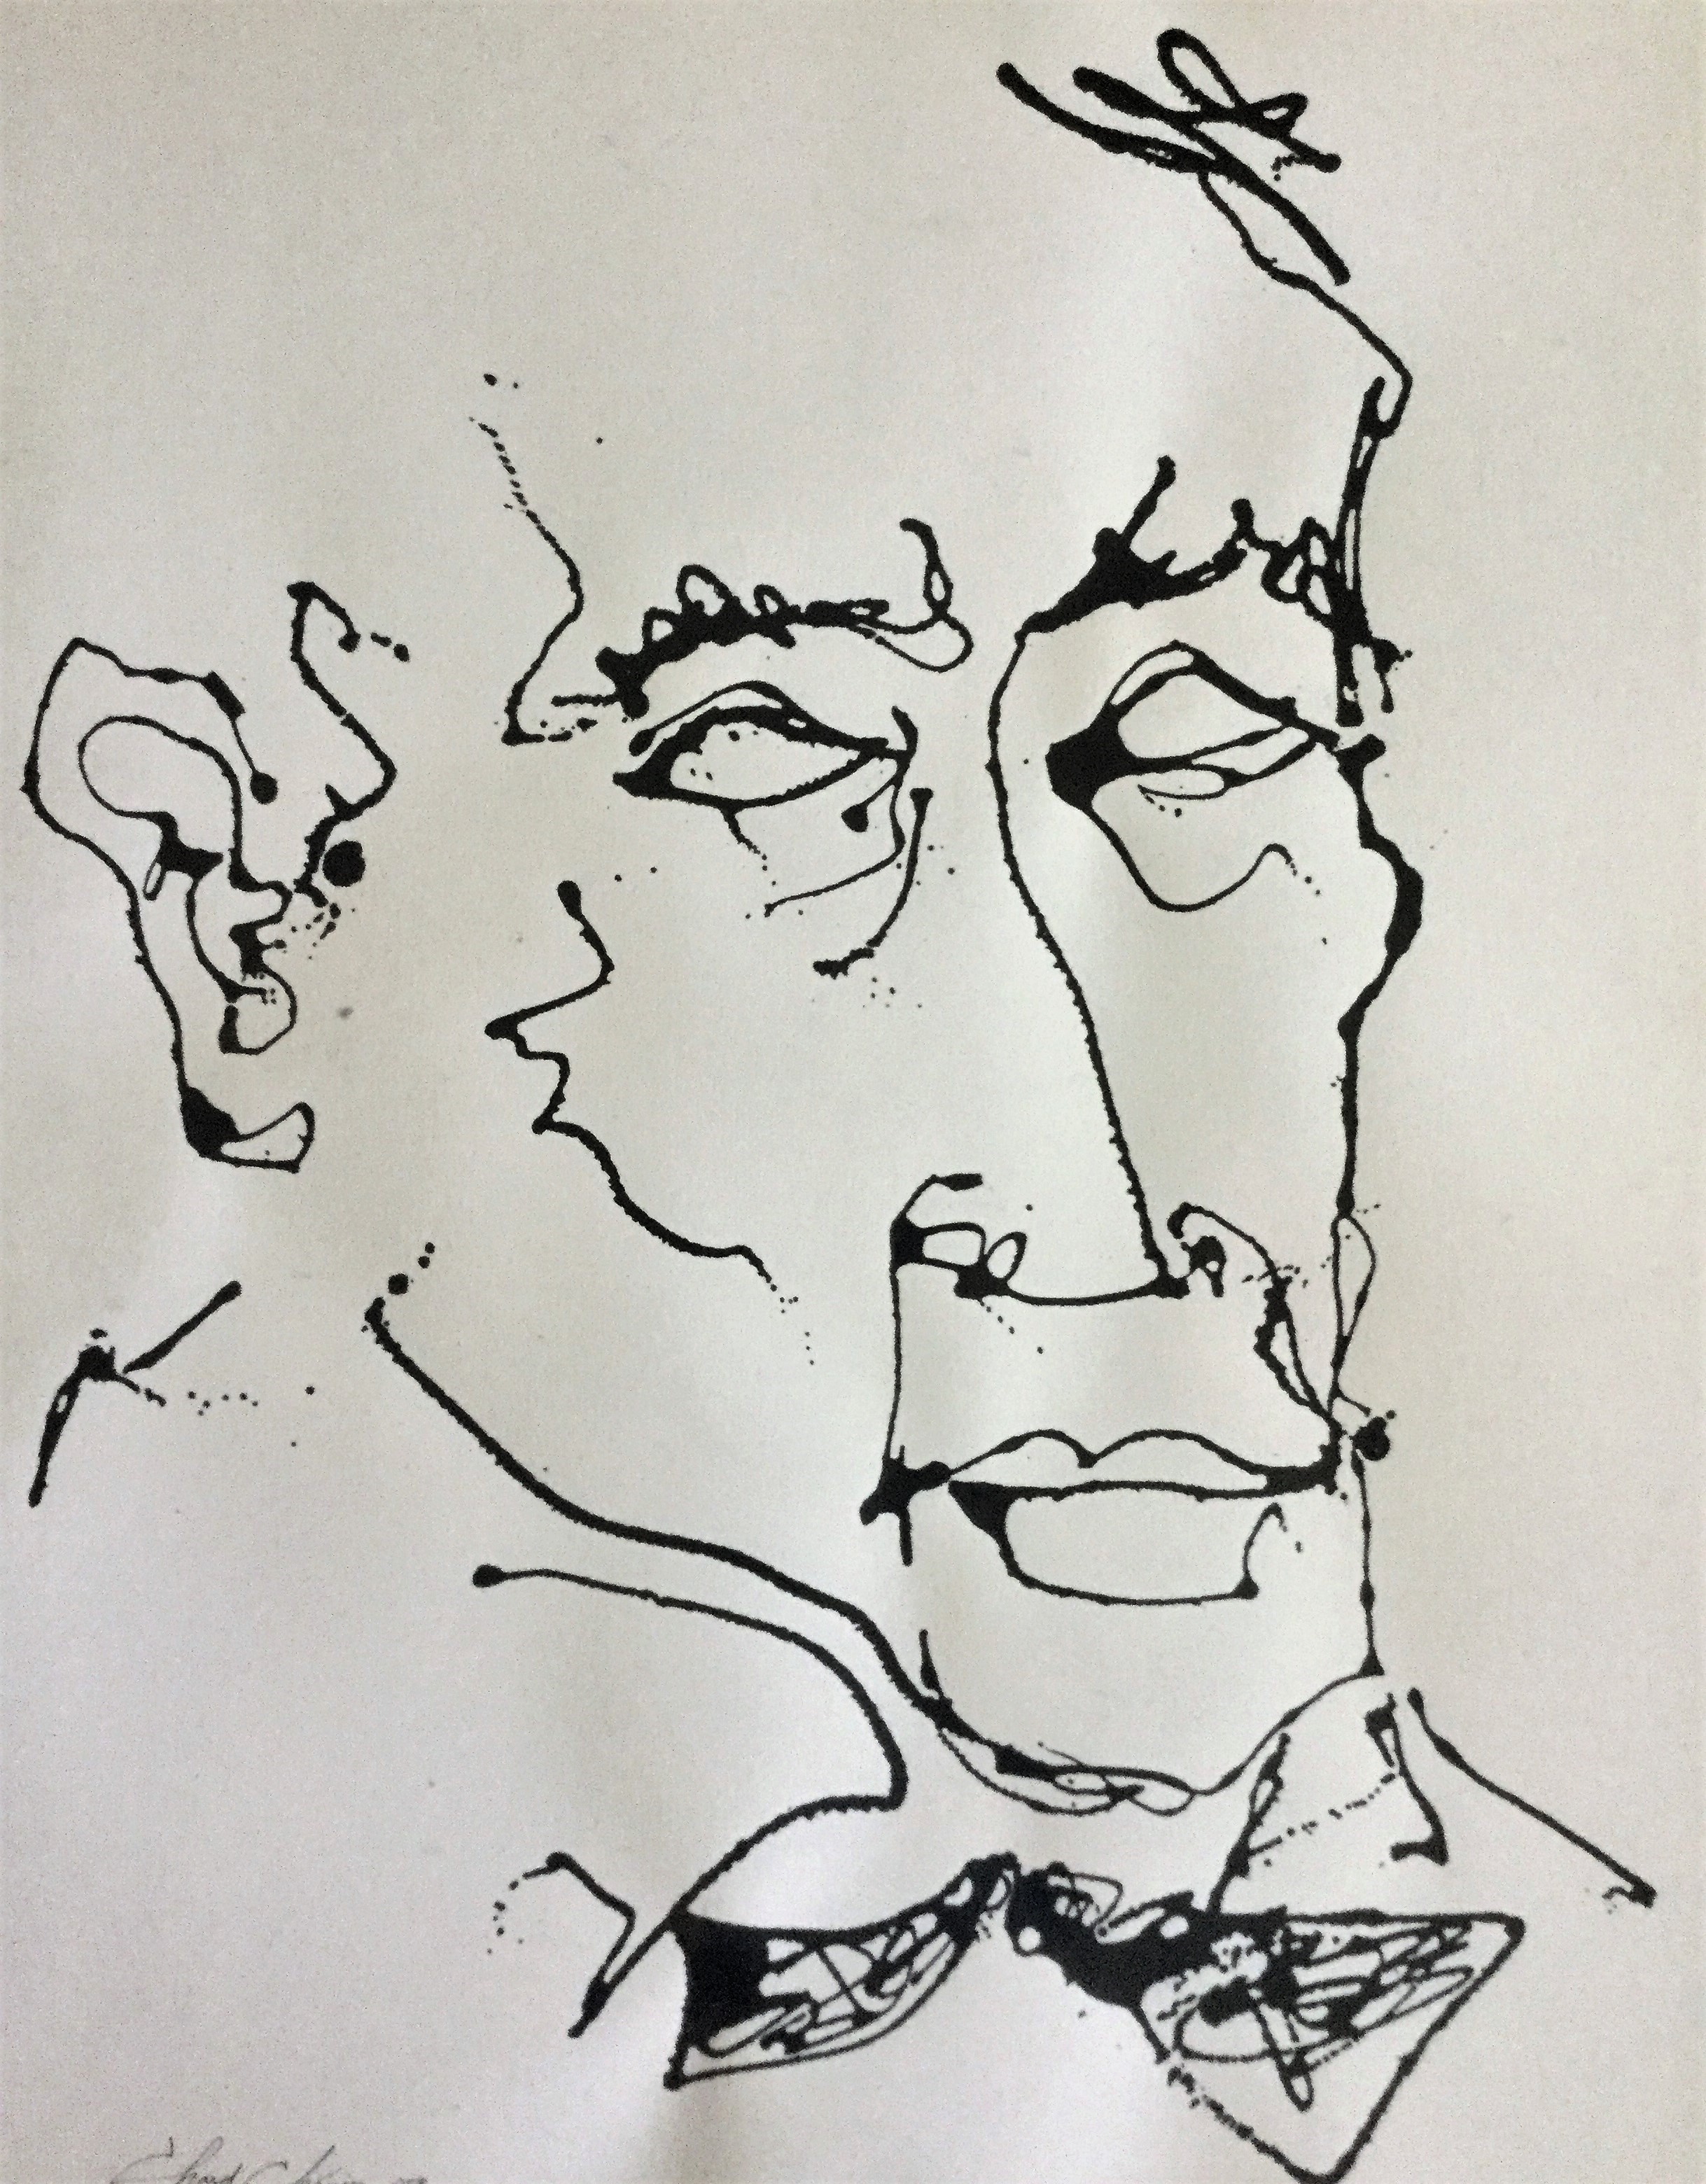 17_Leadbelly - ink on papier d'arche (22 in x 28 in)